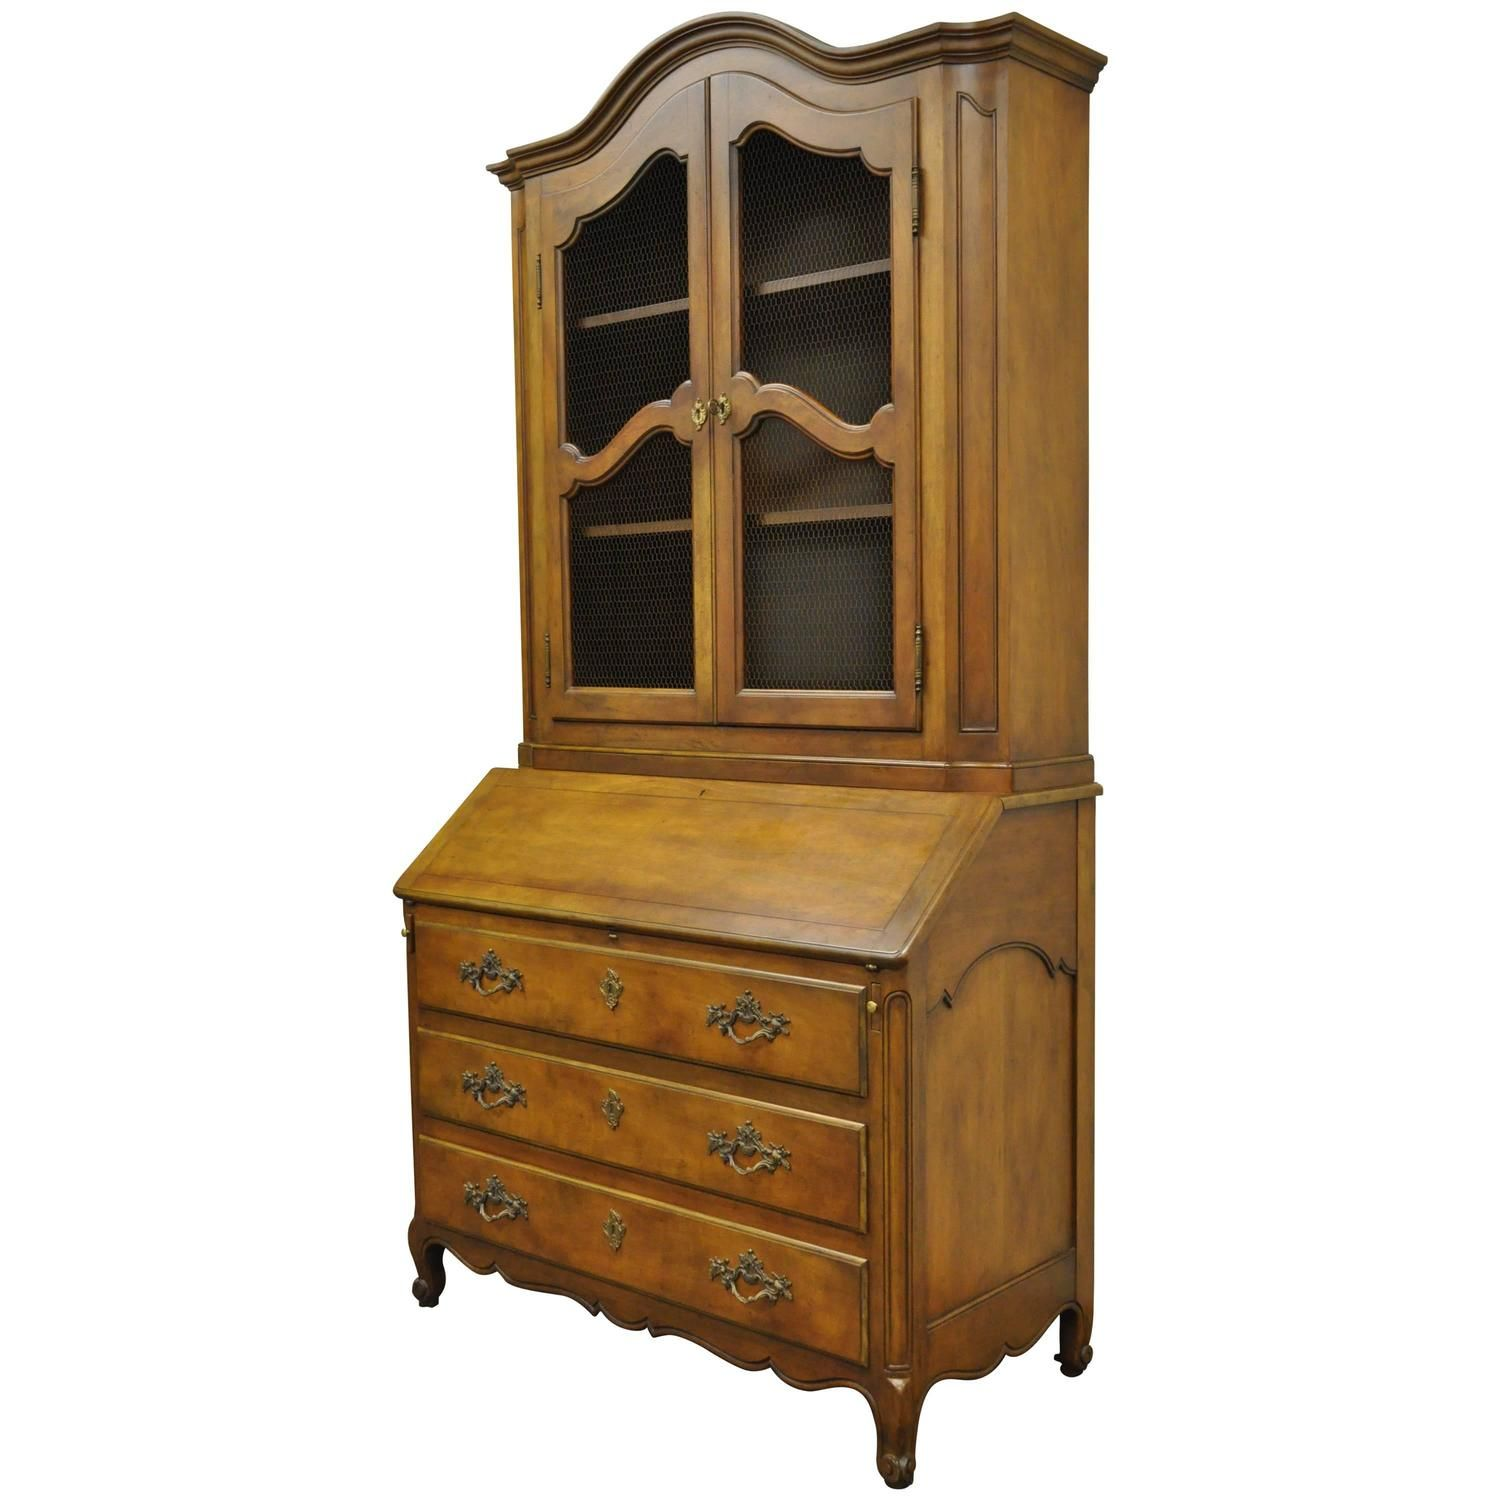 7500 20th Century Baker Furniture Country French Style Secretary Desk or  Bookcase | From a - 20th Century Baker Furniture Country French Style Secretary Desk Or